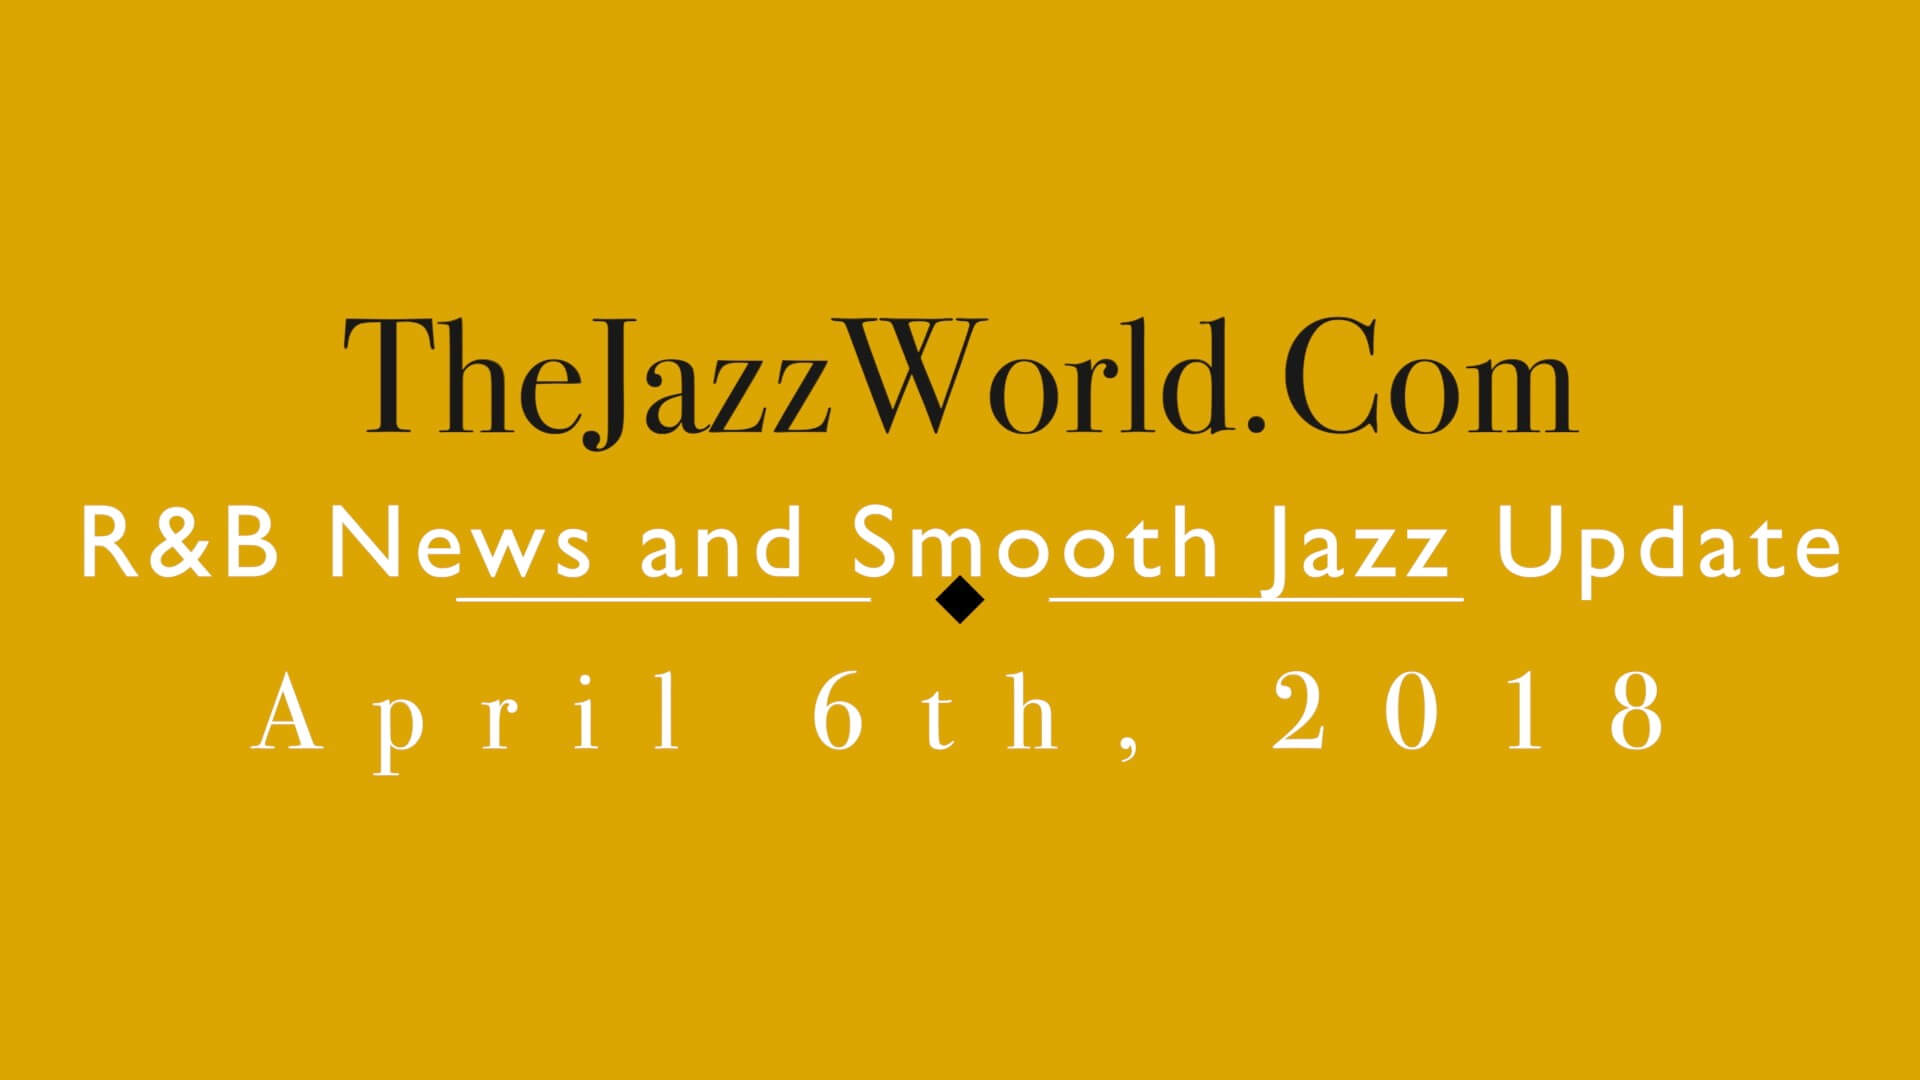 Latest R&B News and Smooth Jazz Update April 6th